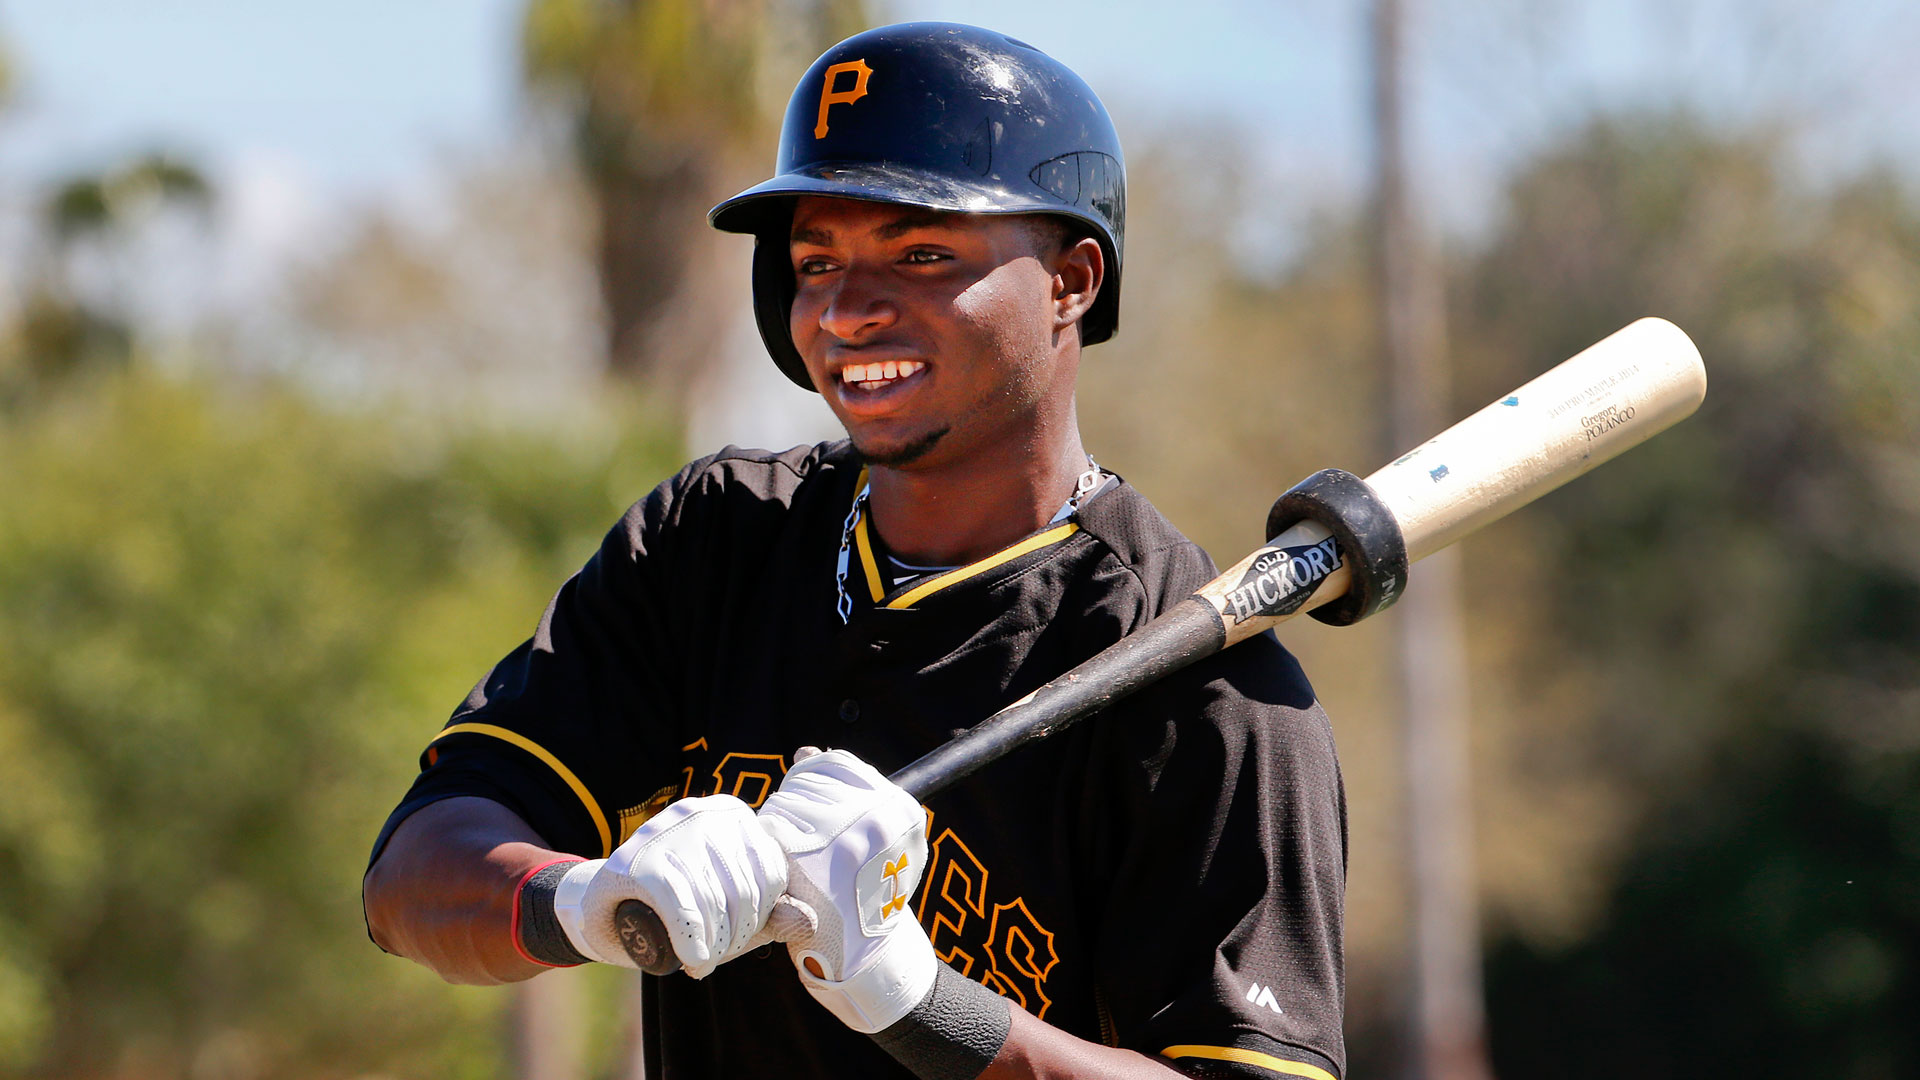 Gregory Polanco-022514-AP-FTR.jpg